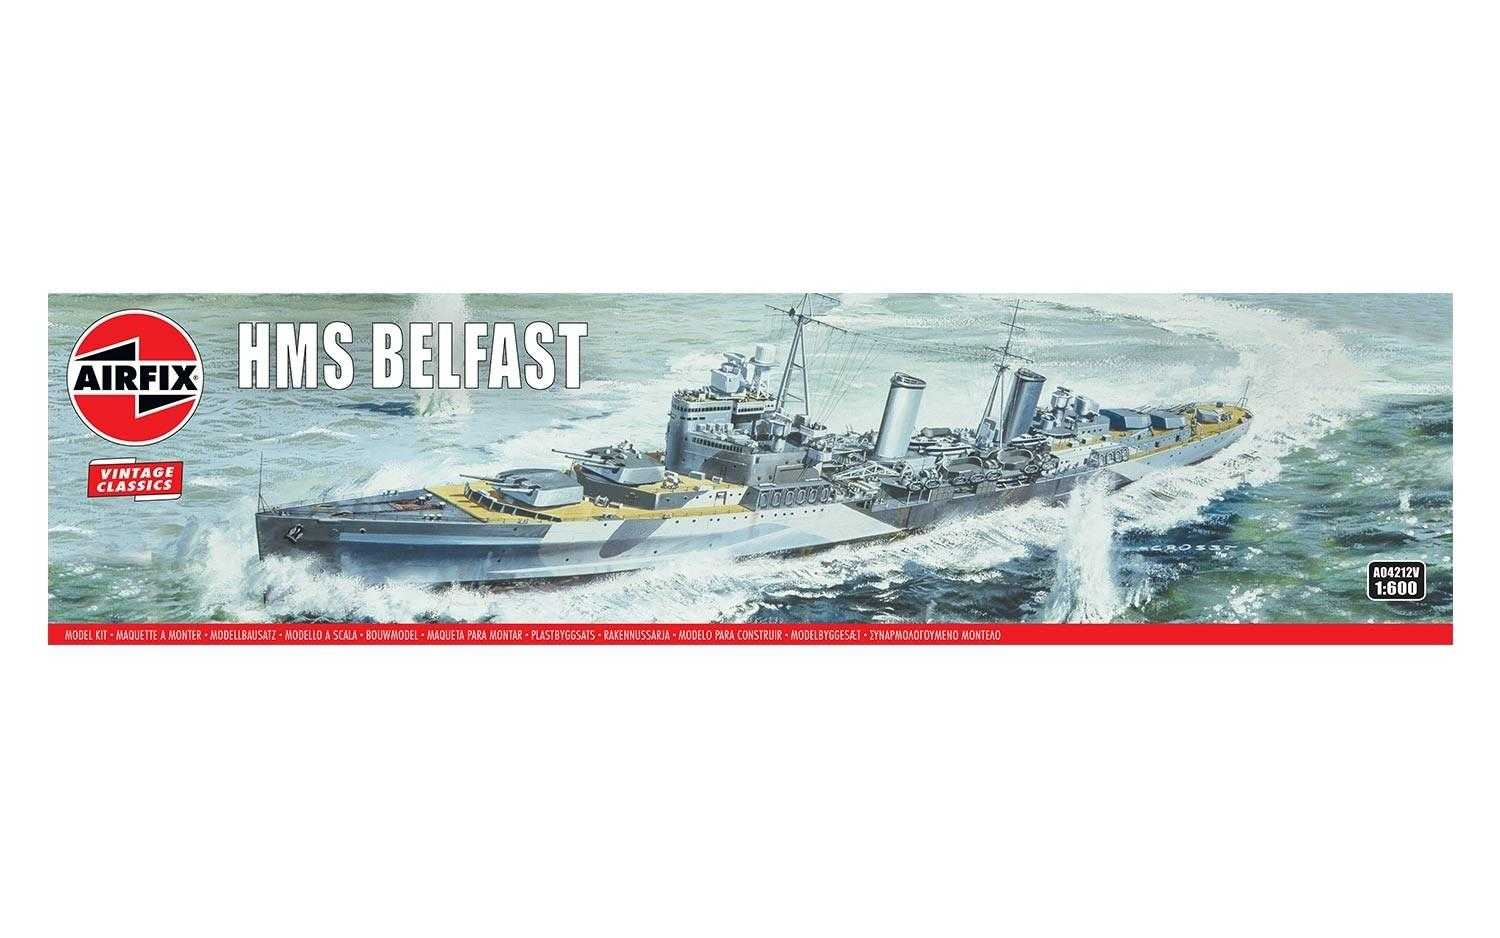 1:600 H.M.S. Belfast (Classic Kit VINTAGE Military)